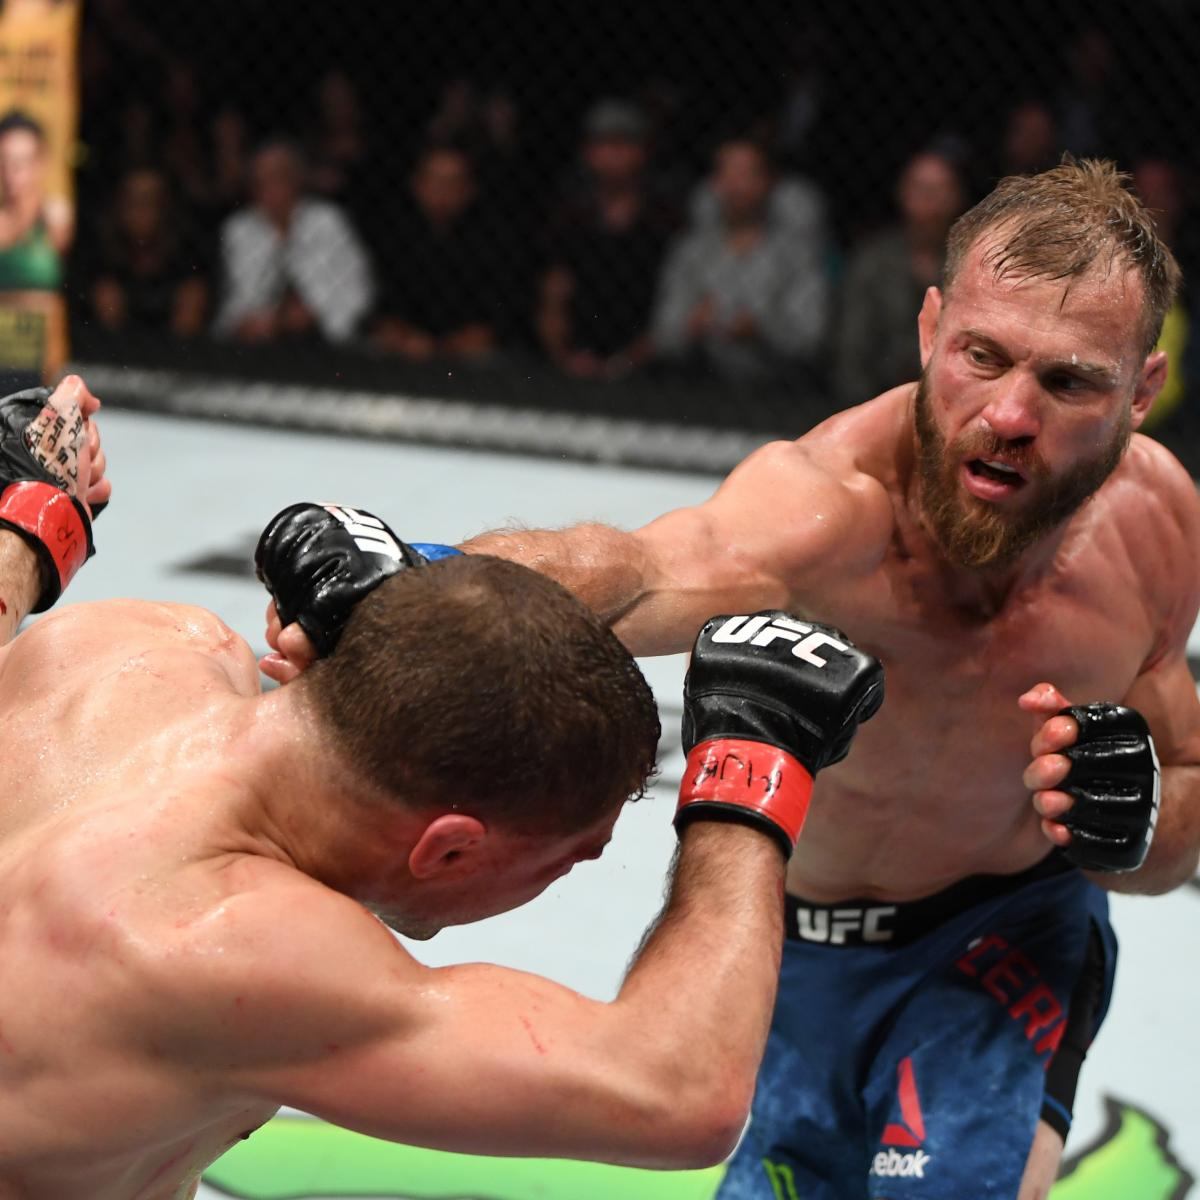 Donald Cerrone looks like a man on a mission, and he has his eye on Conor McGregor. After Cowboy defeated Al Iaquinta by unanimous decision Saturday during UFC Fight Night 151, he turned his attention to his next match...